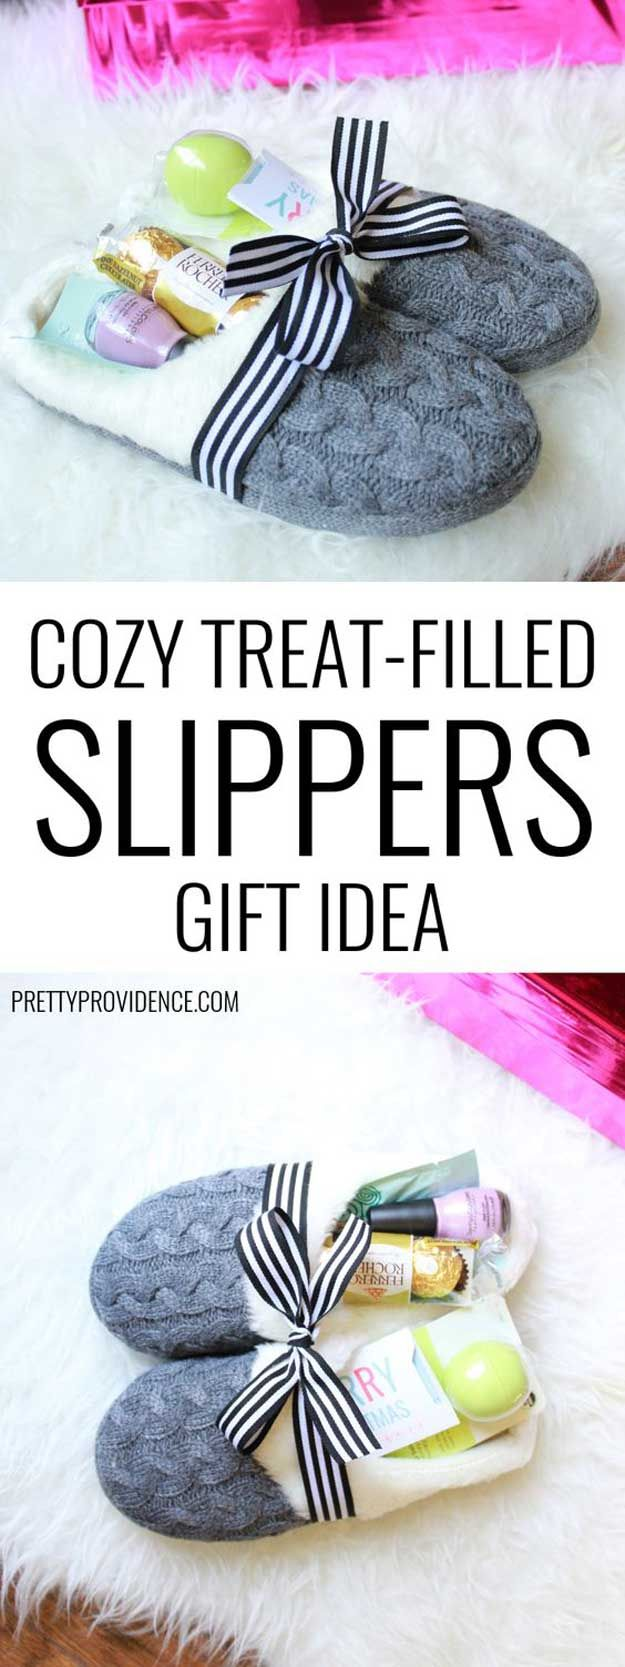 25 best ideas about cute gifts on pinterest cute gift for Cute small gifts for friends